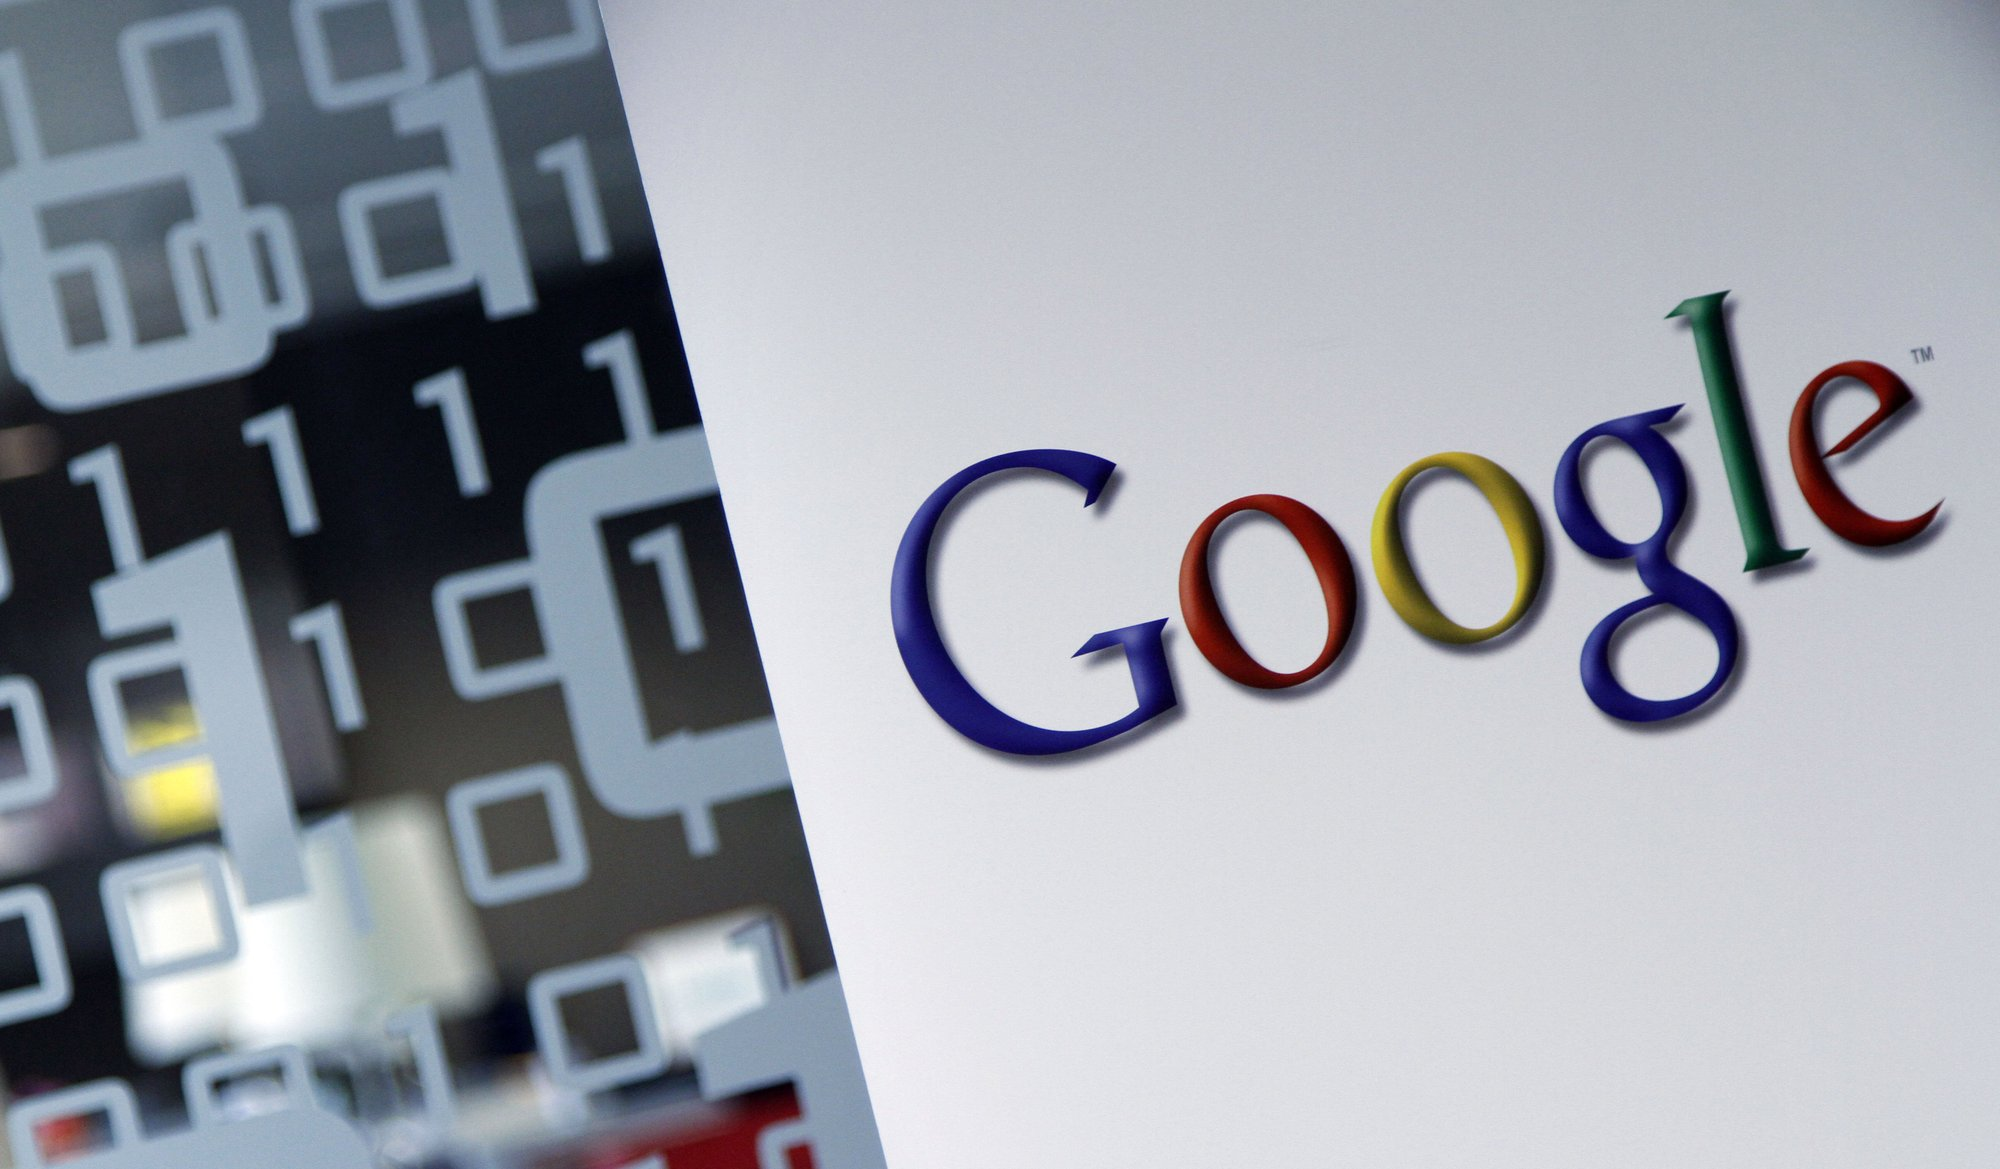 Discussion on this topic: A female former employee has accused Google's , a-female-former-employee-has-accused-googles/